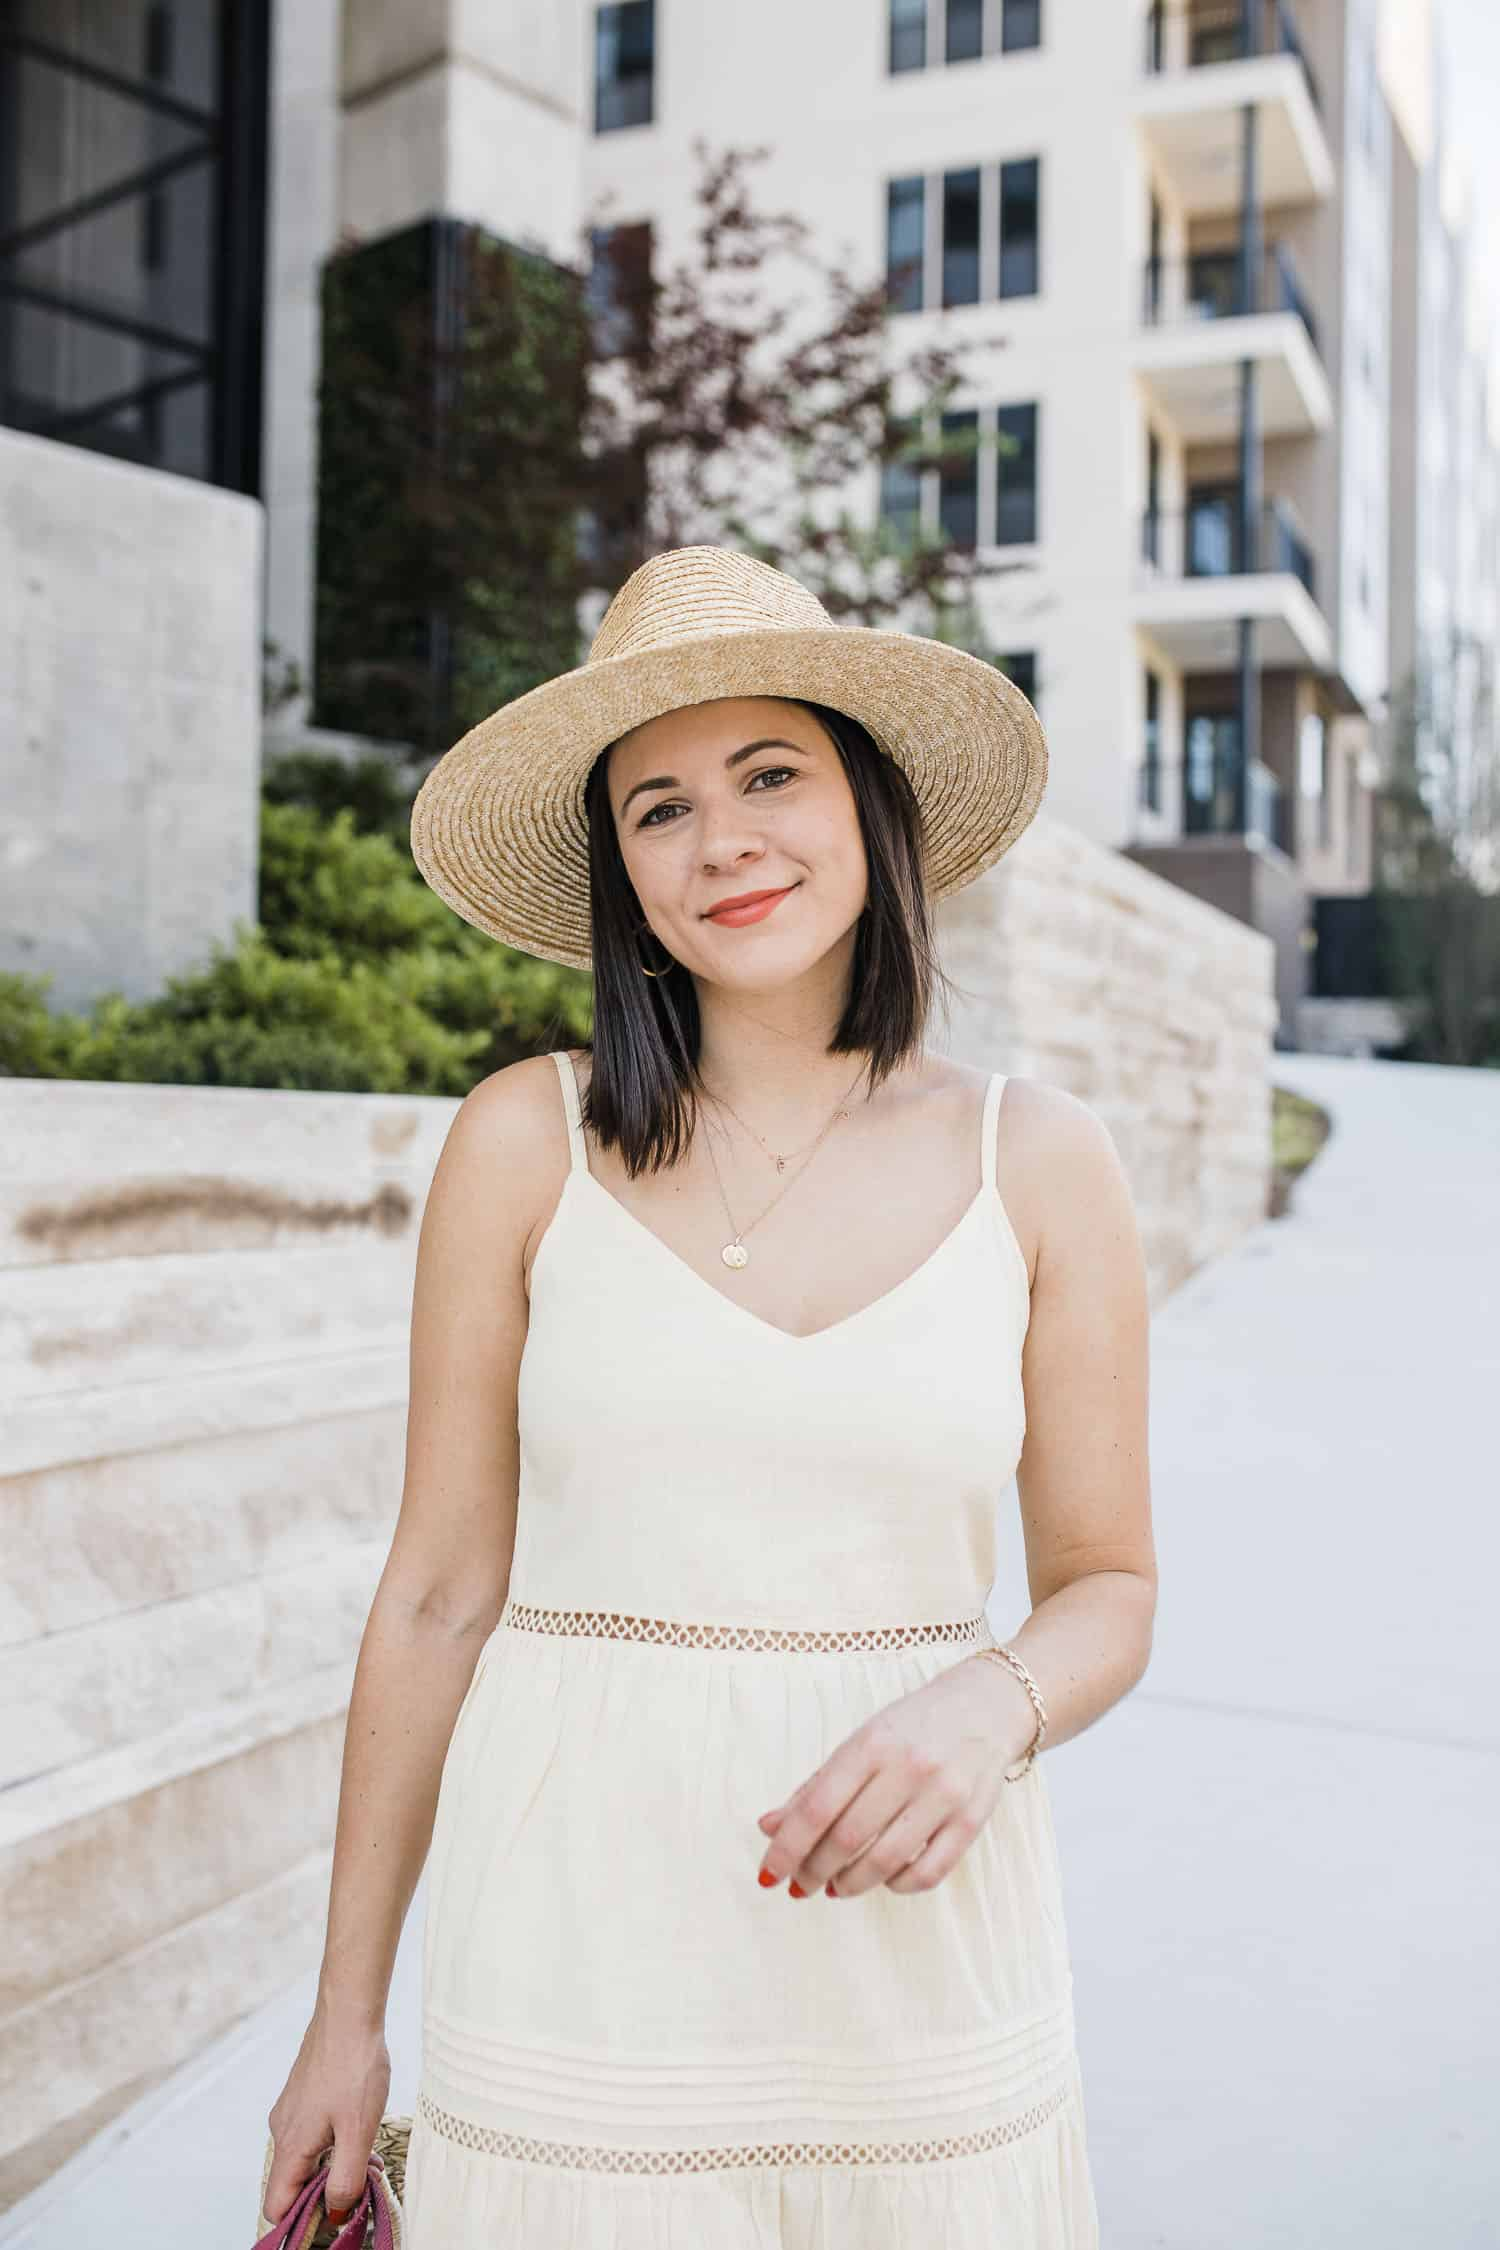 Summer straw hat and summer maxi dress